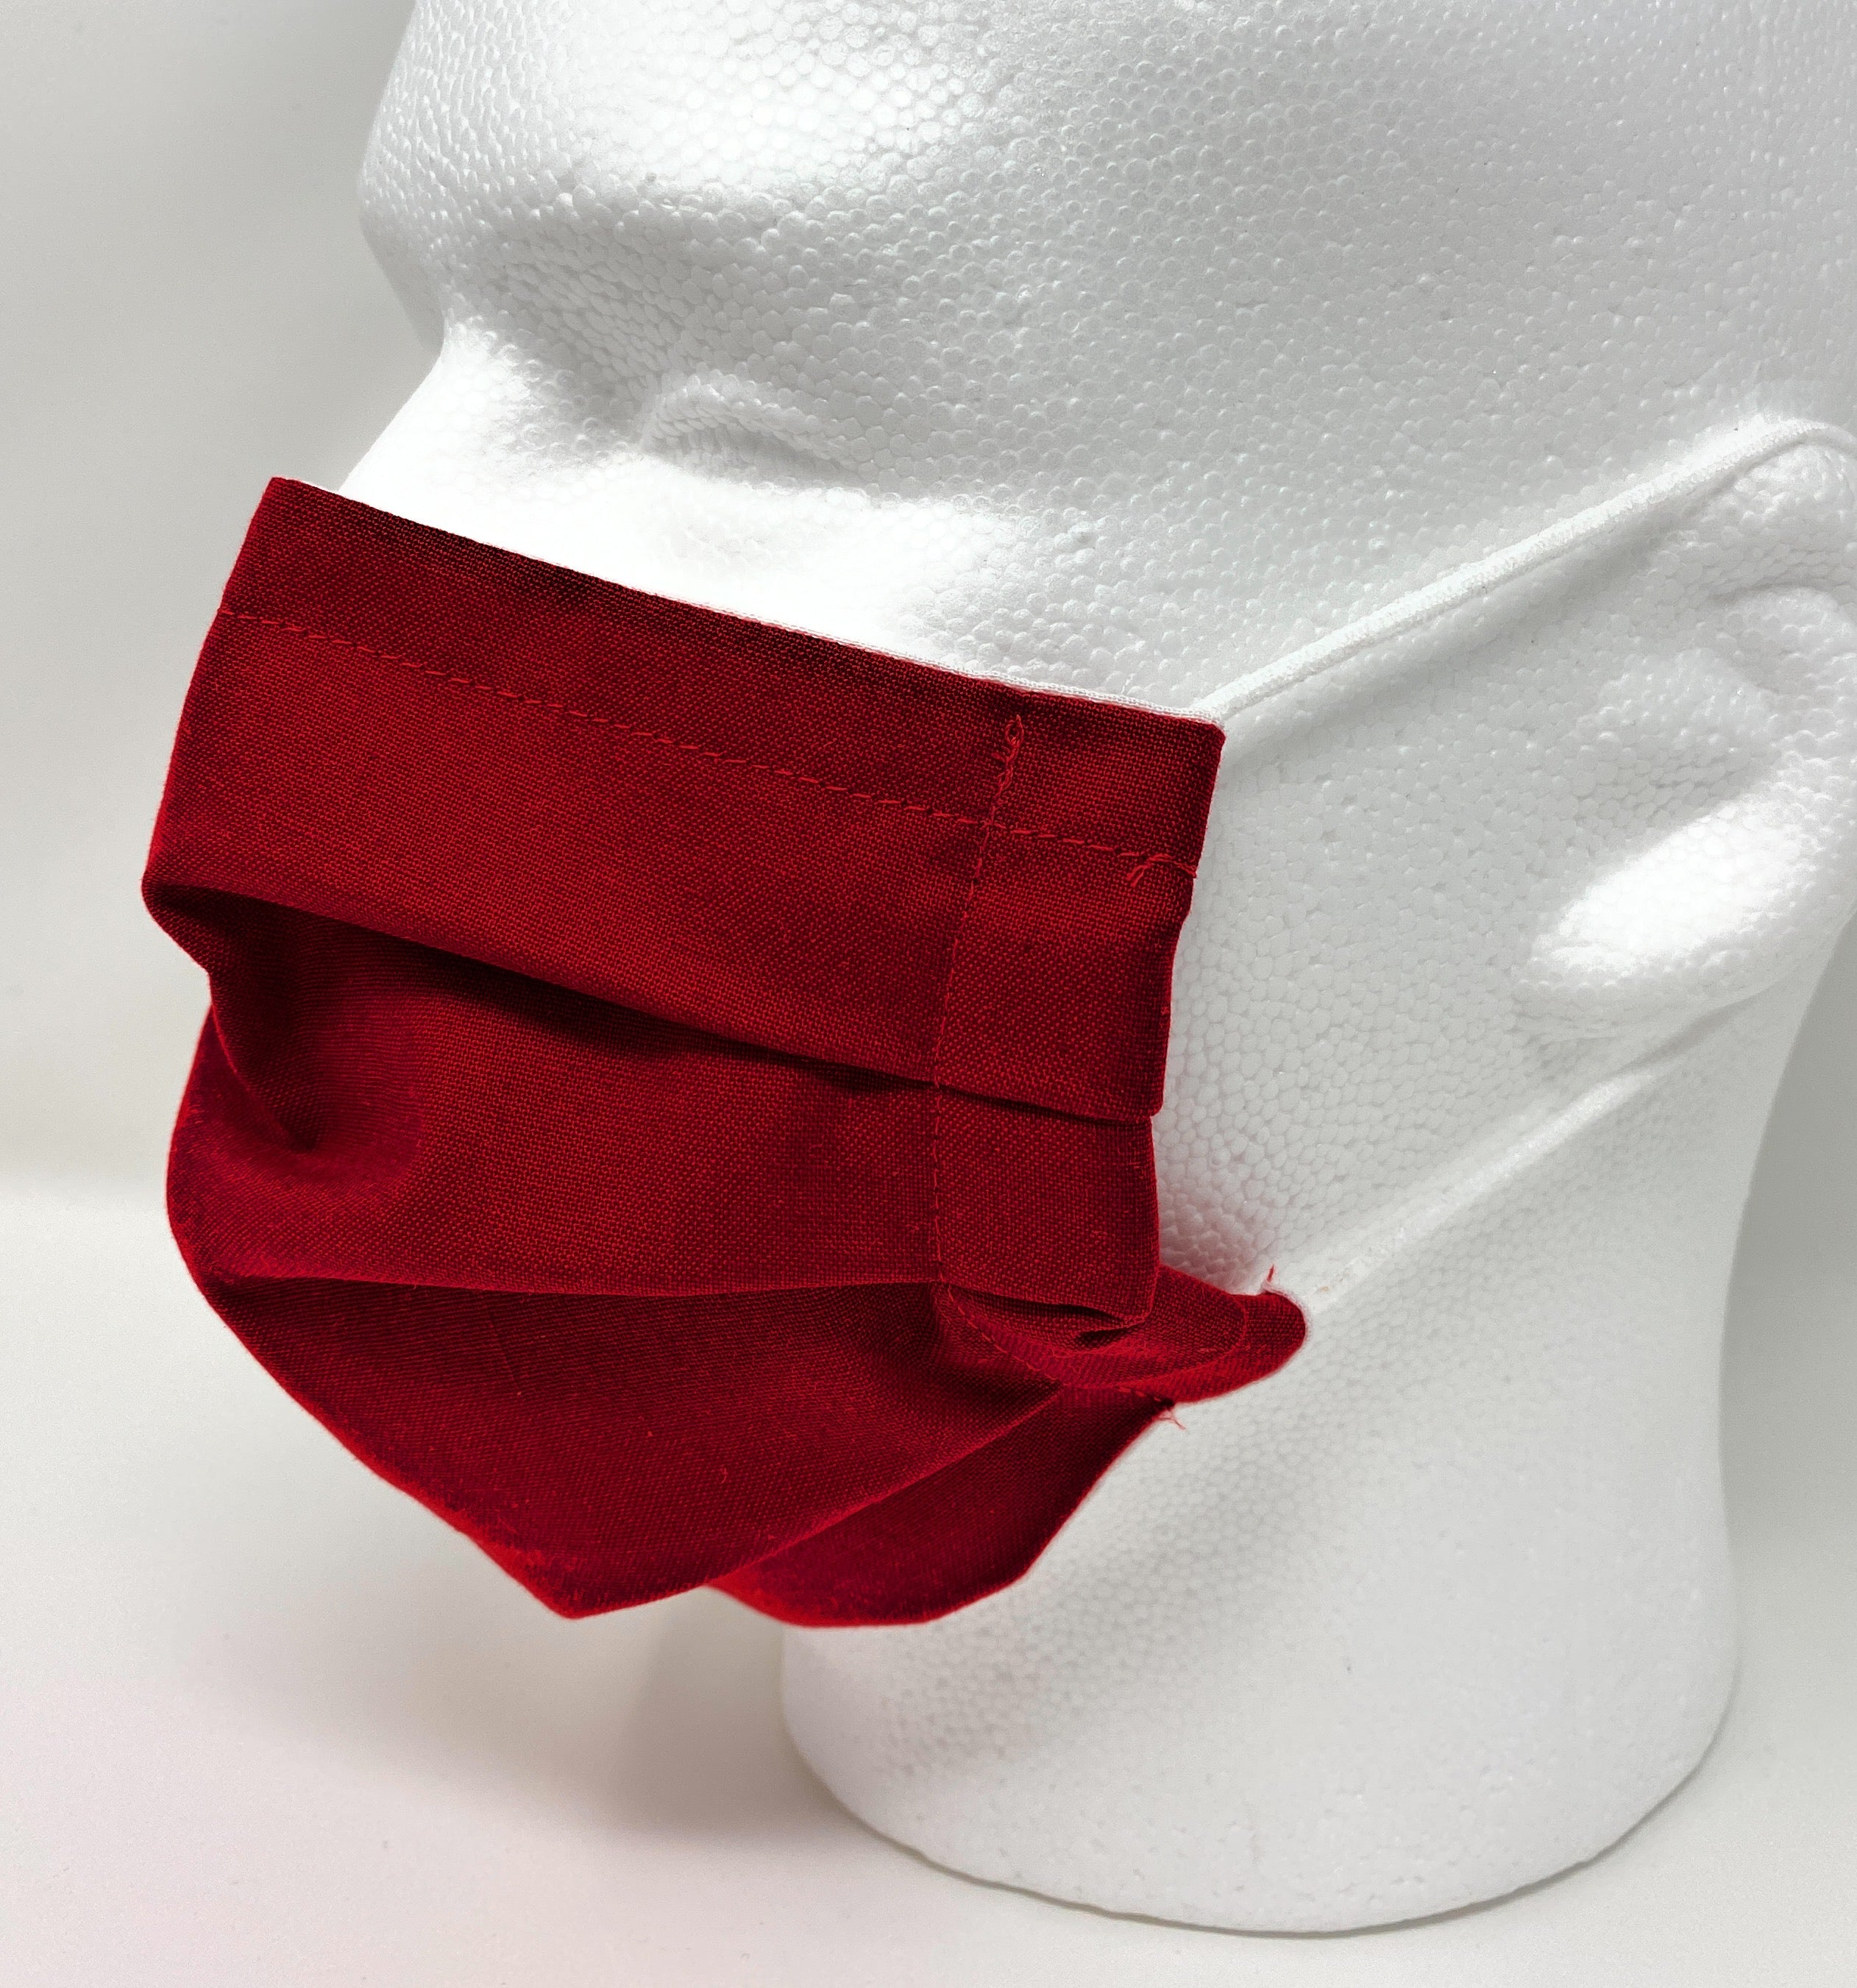 Face Mask - Pleated with Nose Wire Filter Pocket US made - Filters Included